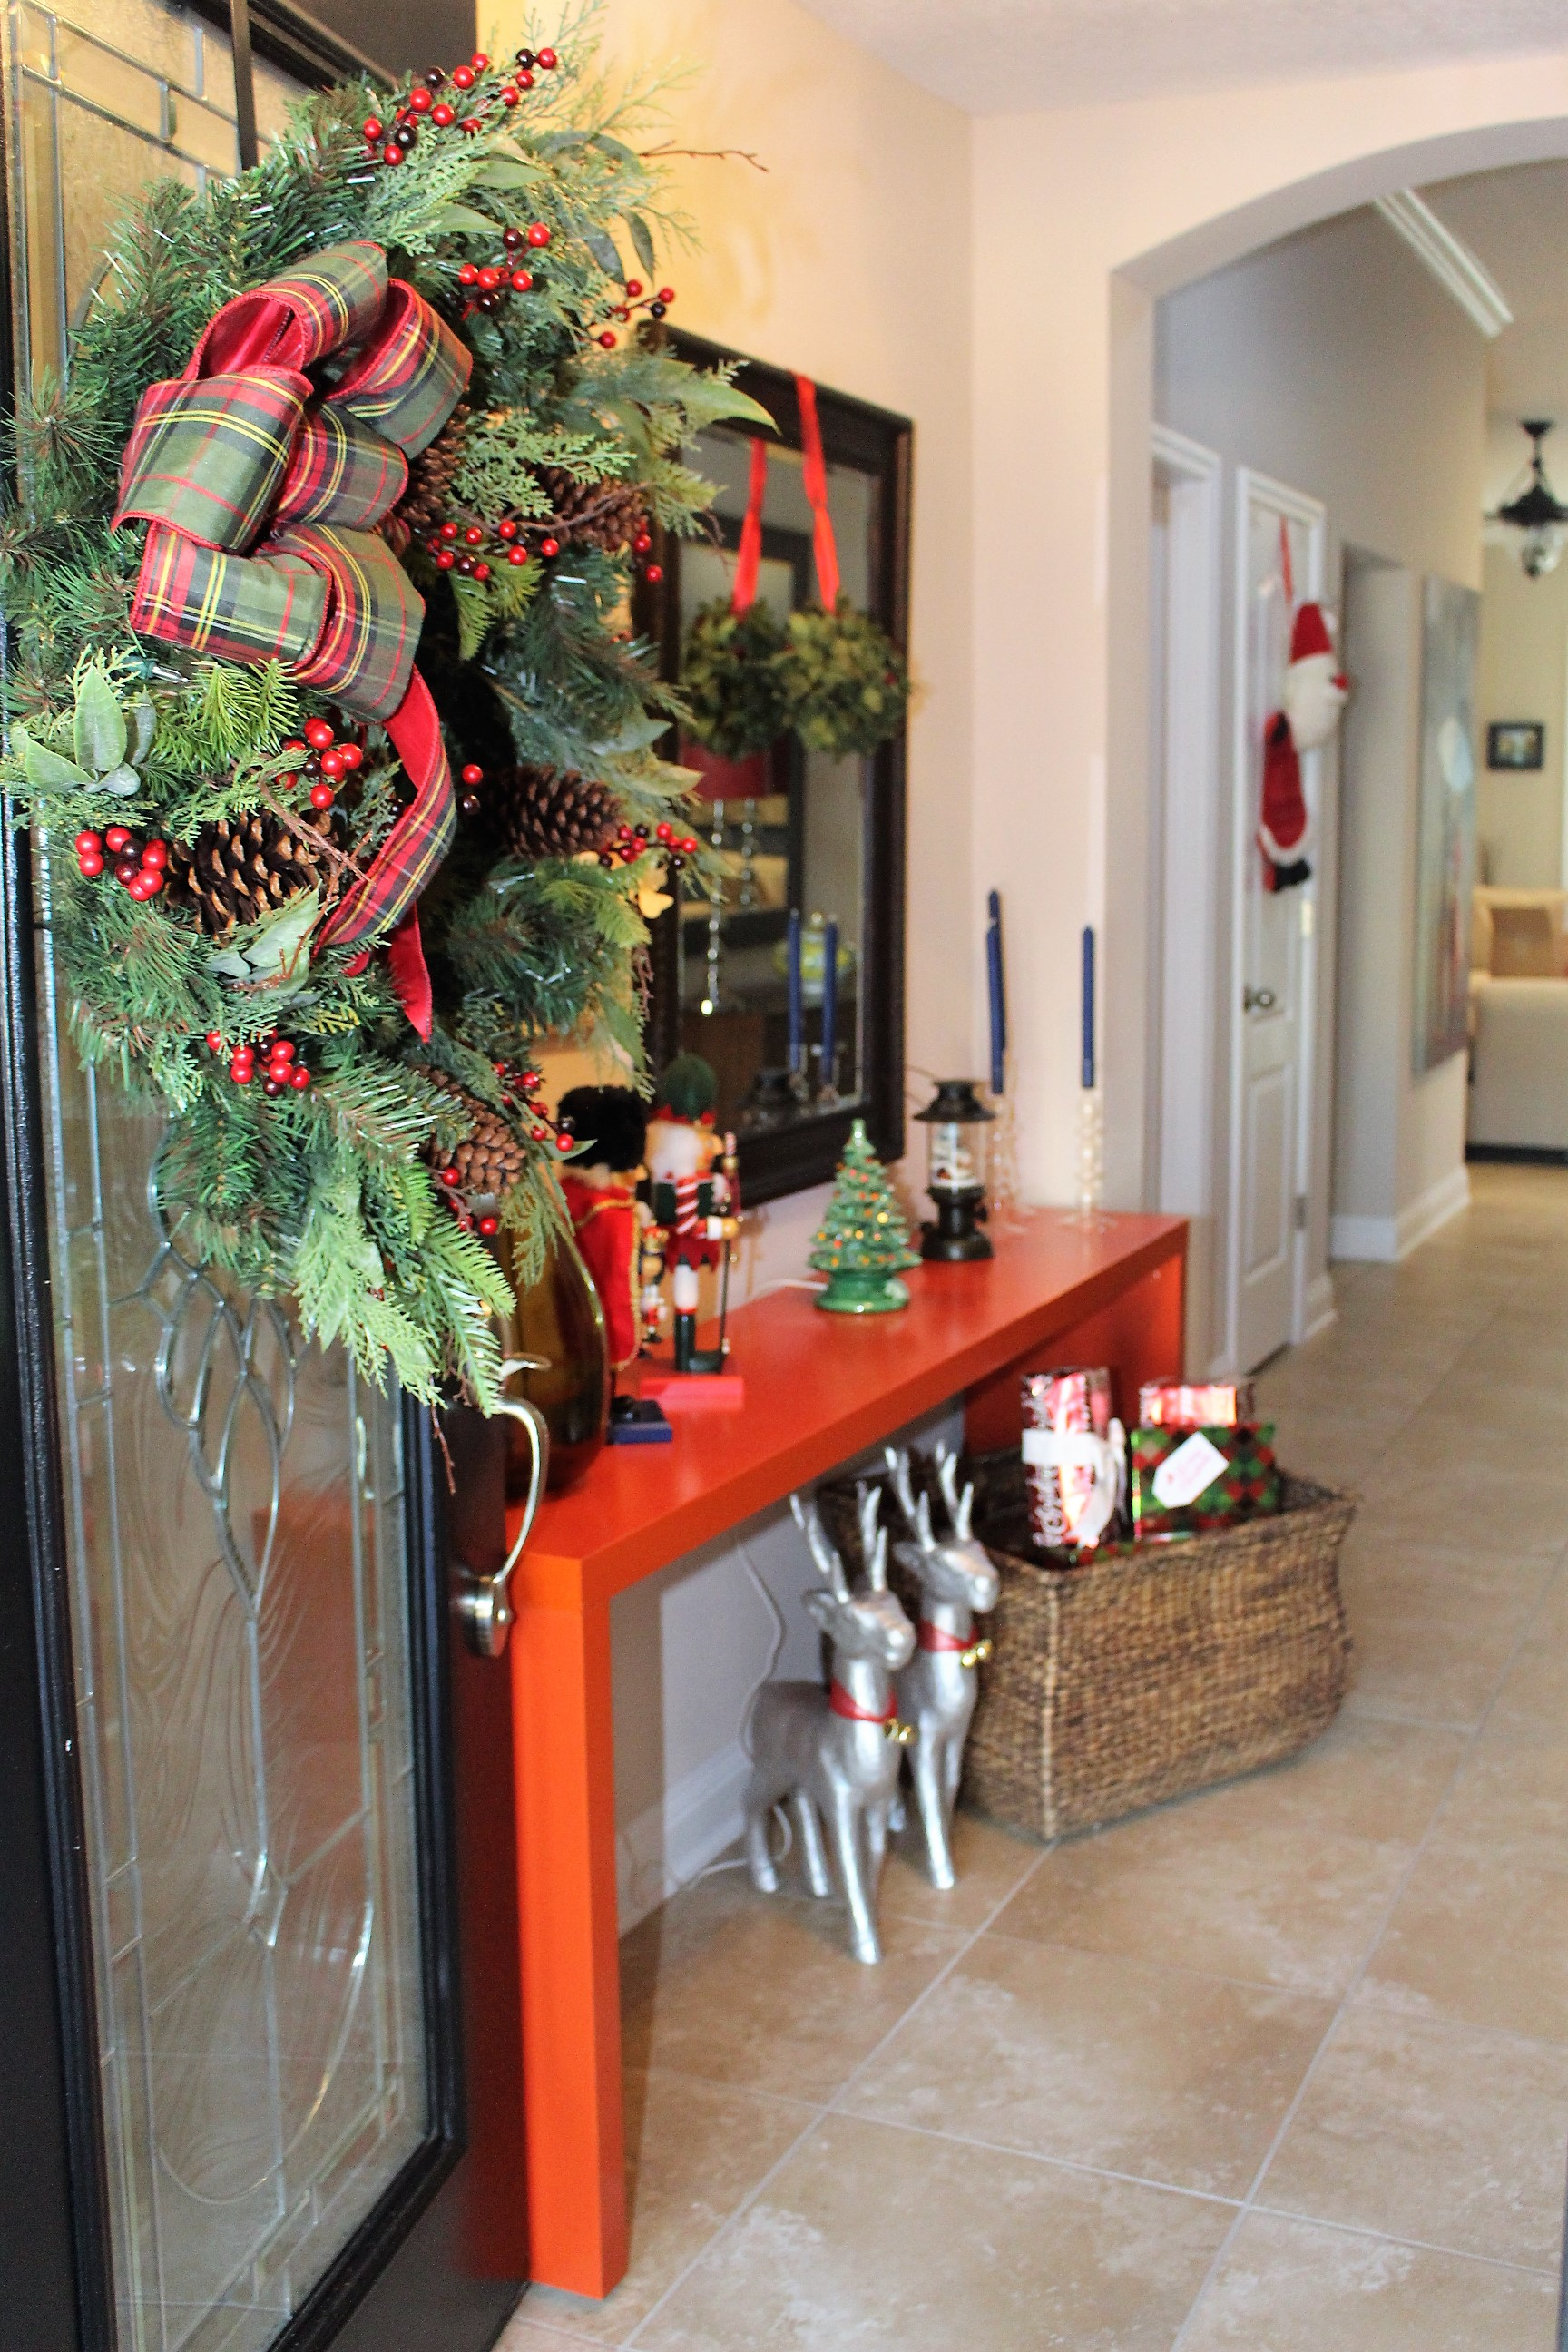 Entryway decorated for Christmas